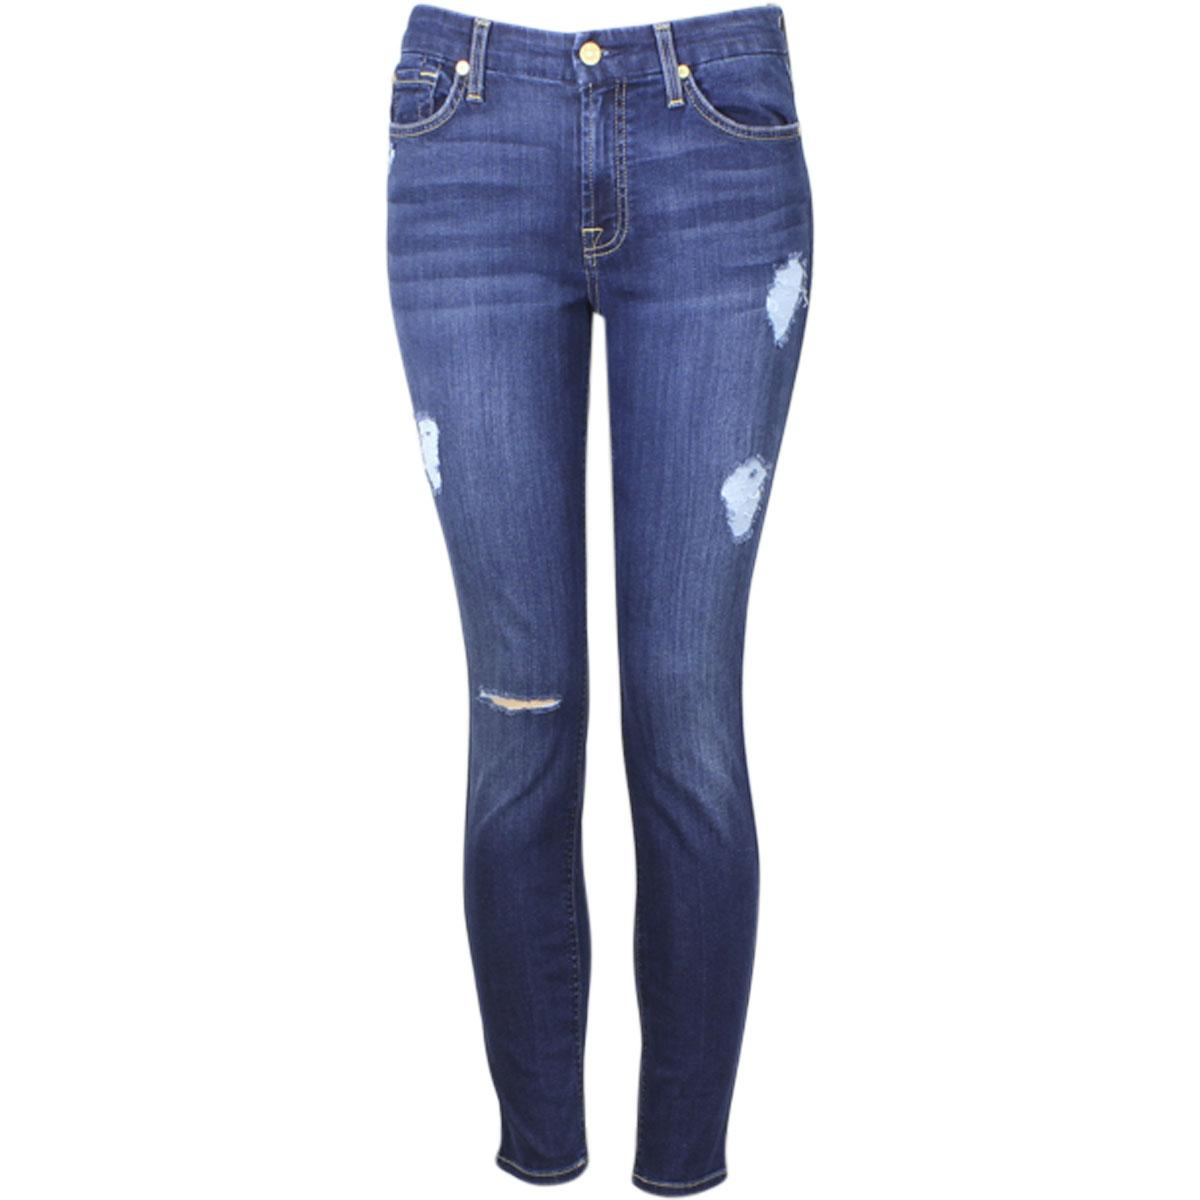 Image of 7 For All Mankind Women's Ankle Skinny With Destroy (B)Air Denim Cropped Jeans - Duchess - 26 (1/2)